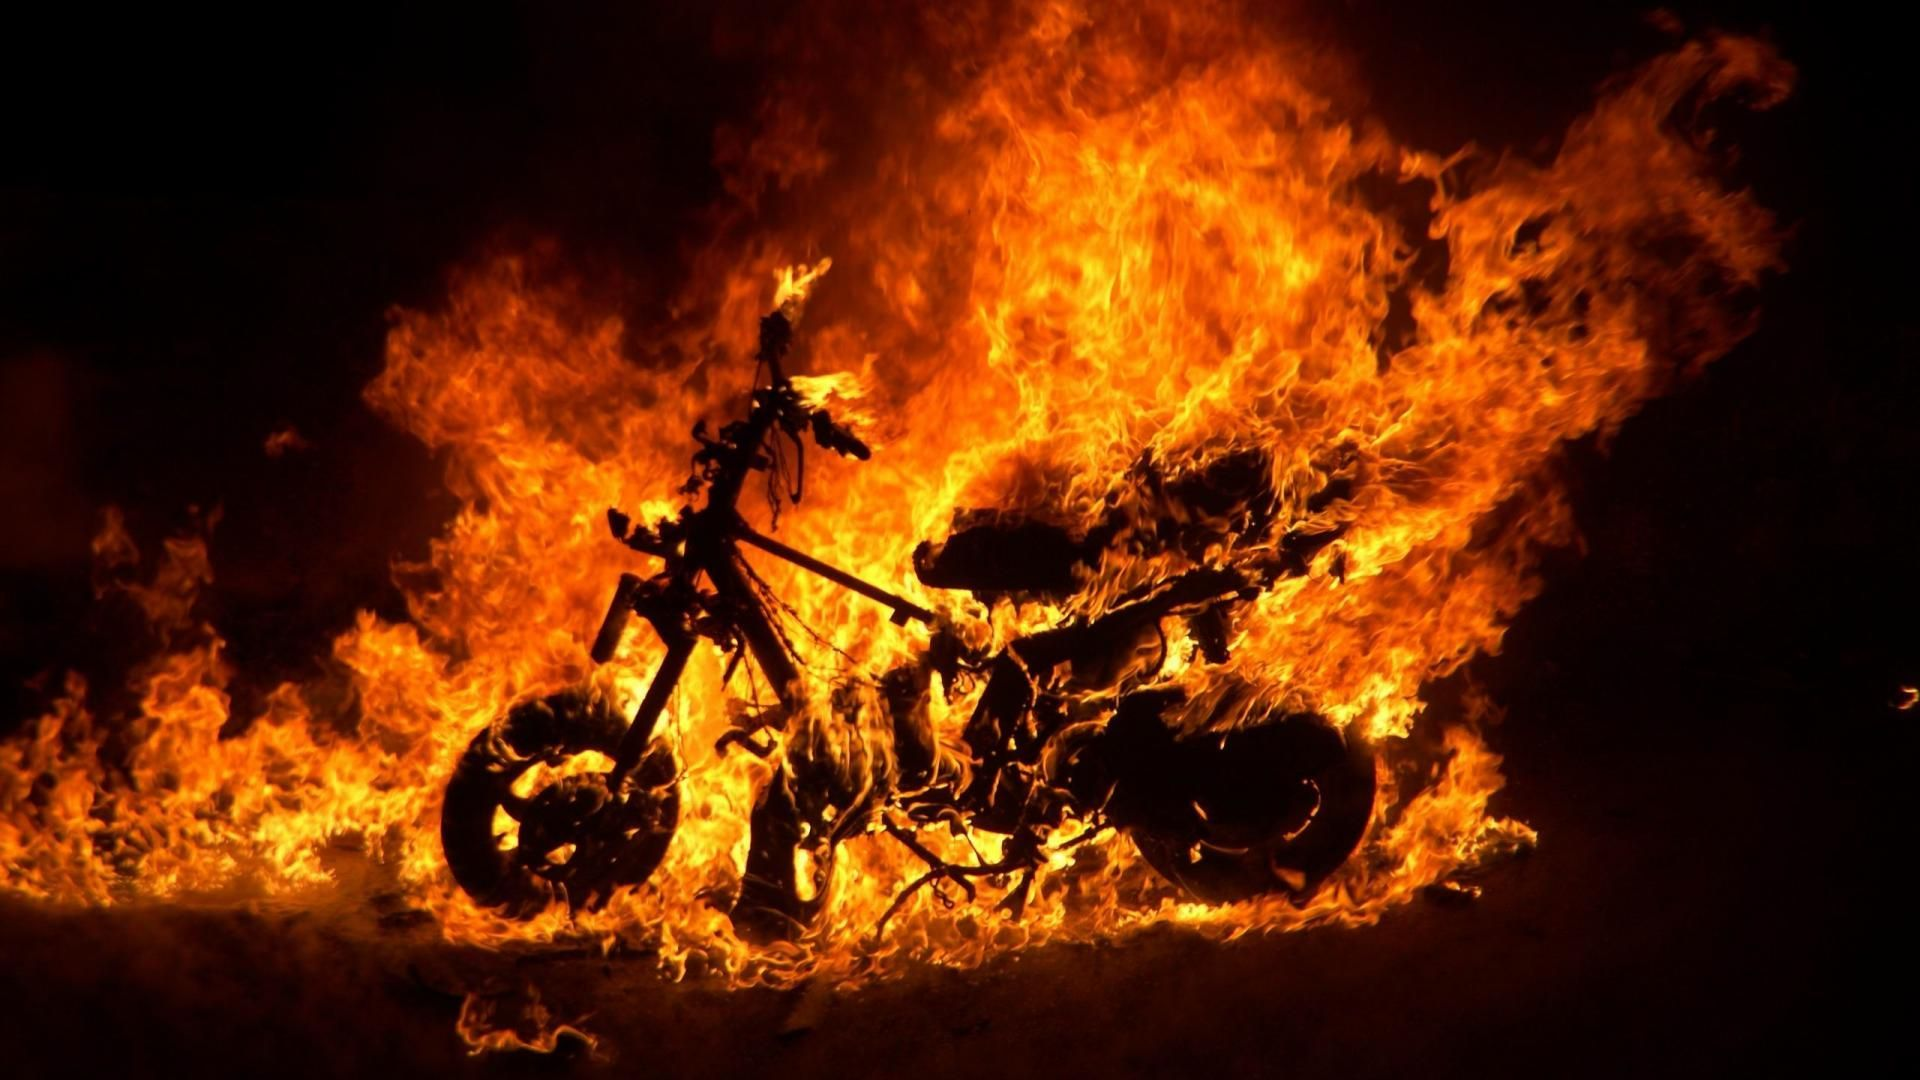 Ghost Rider HD Wallpapers  Backgrounds  Wallpaper  1920x1080